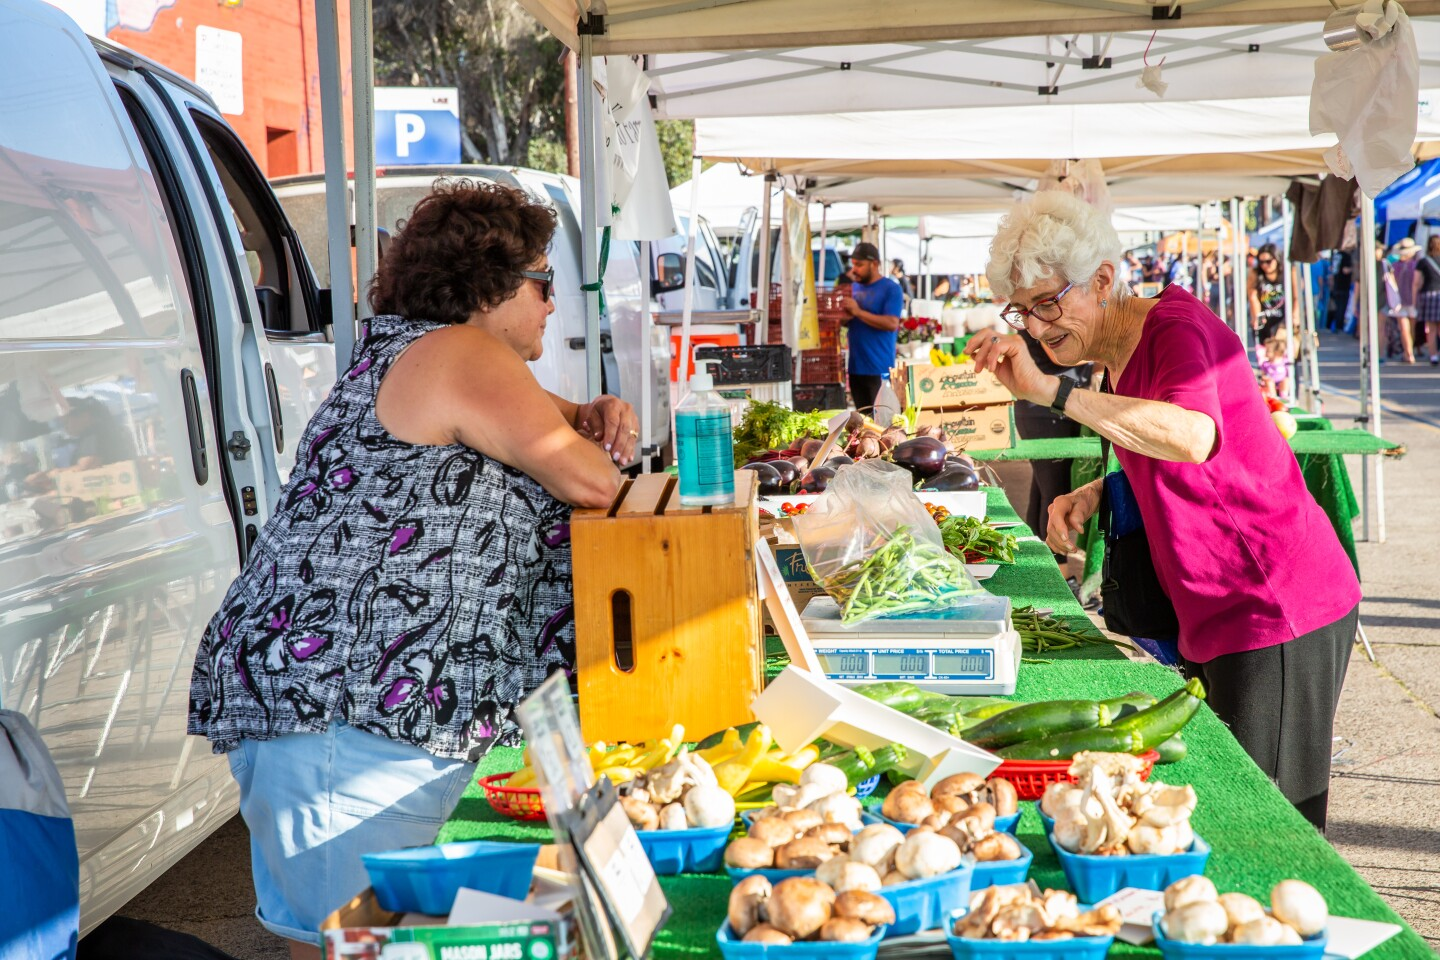 Kim Walters shows customer Eve Anderson her produce on display at the PB Tuesday Farmers' Market on July 20.